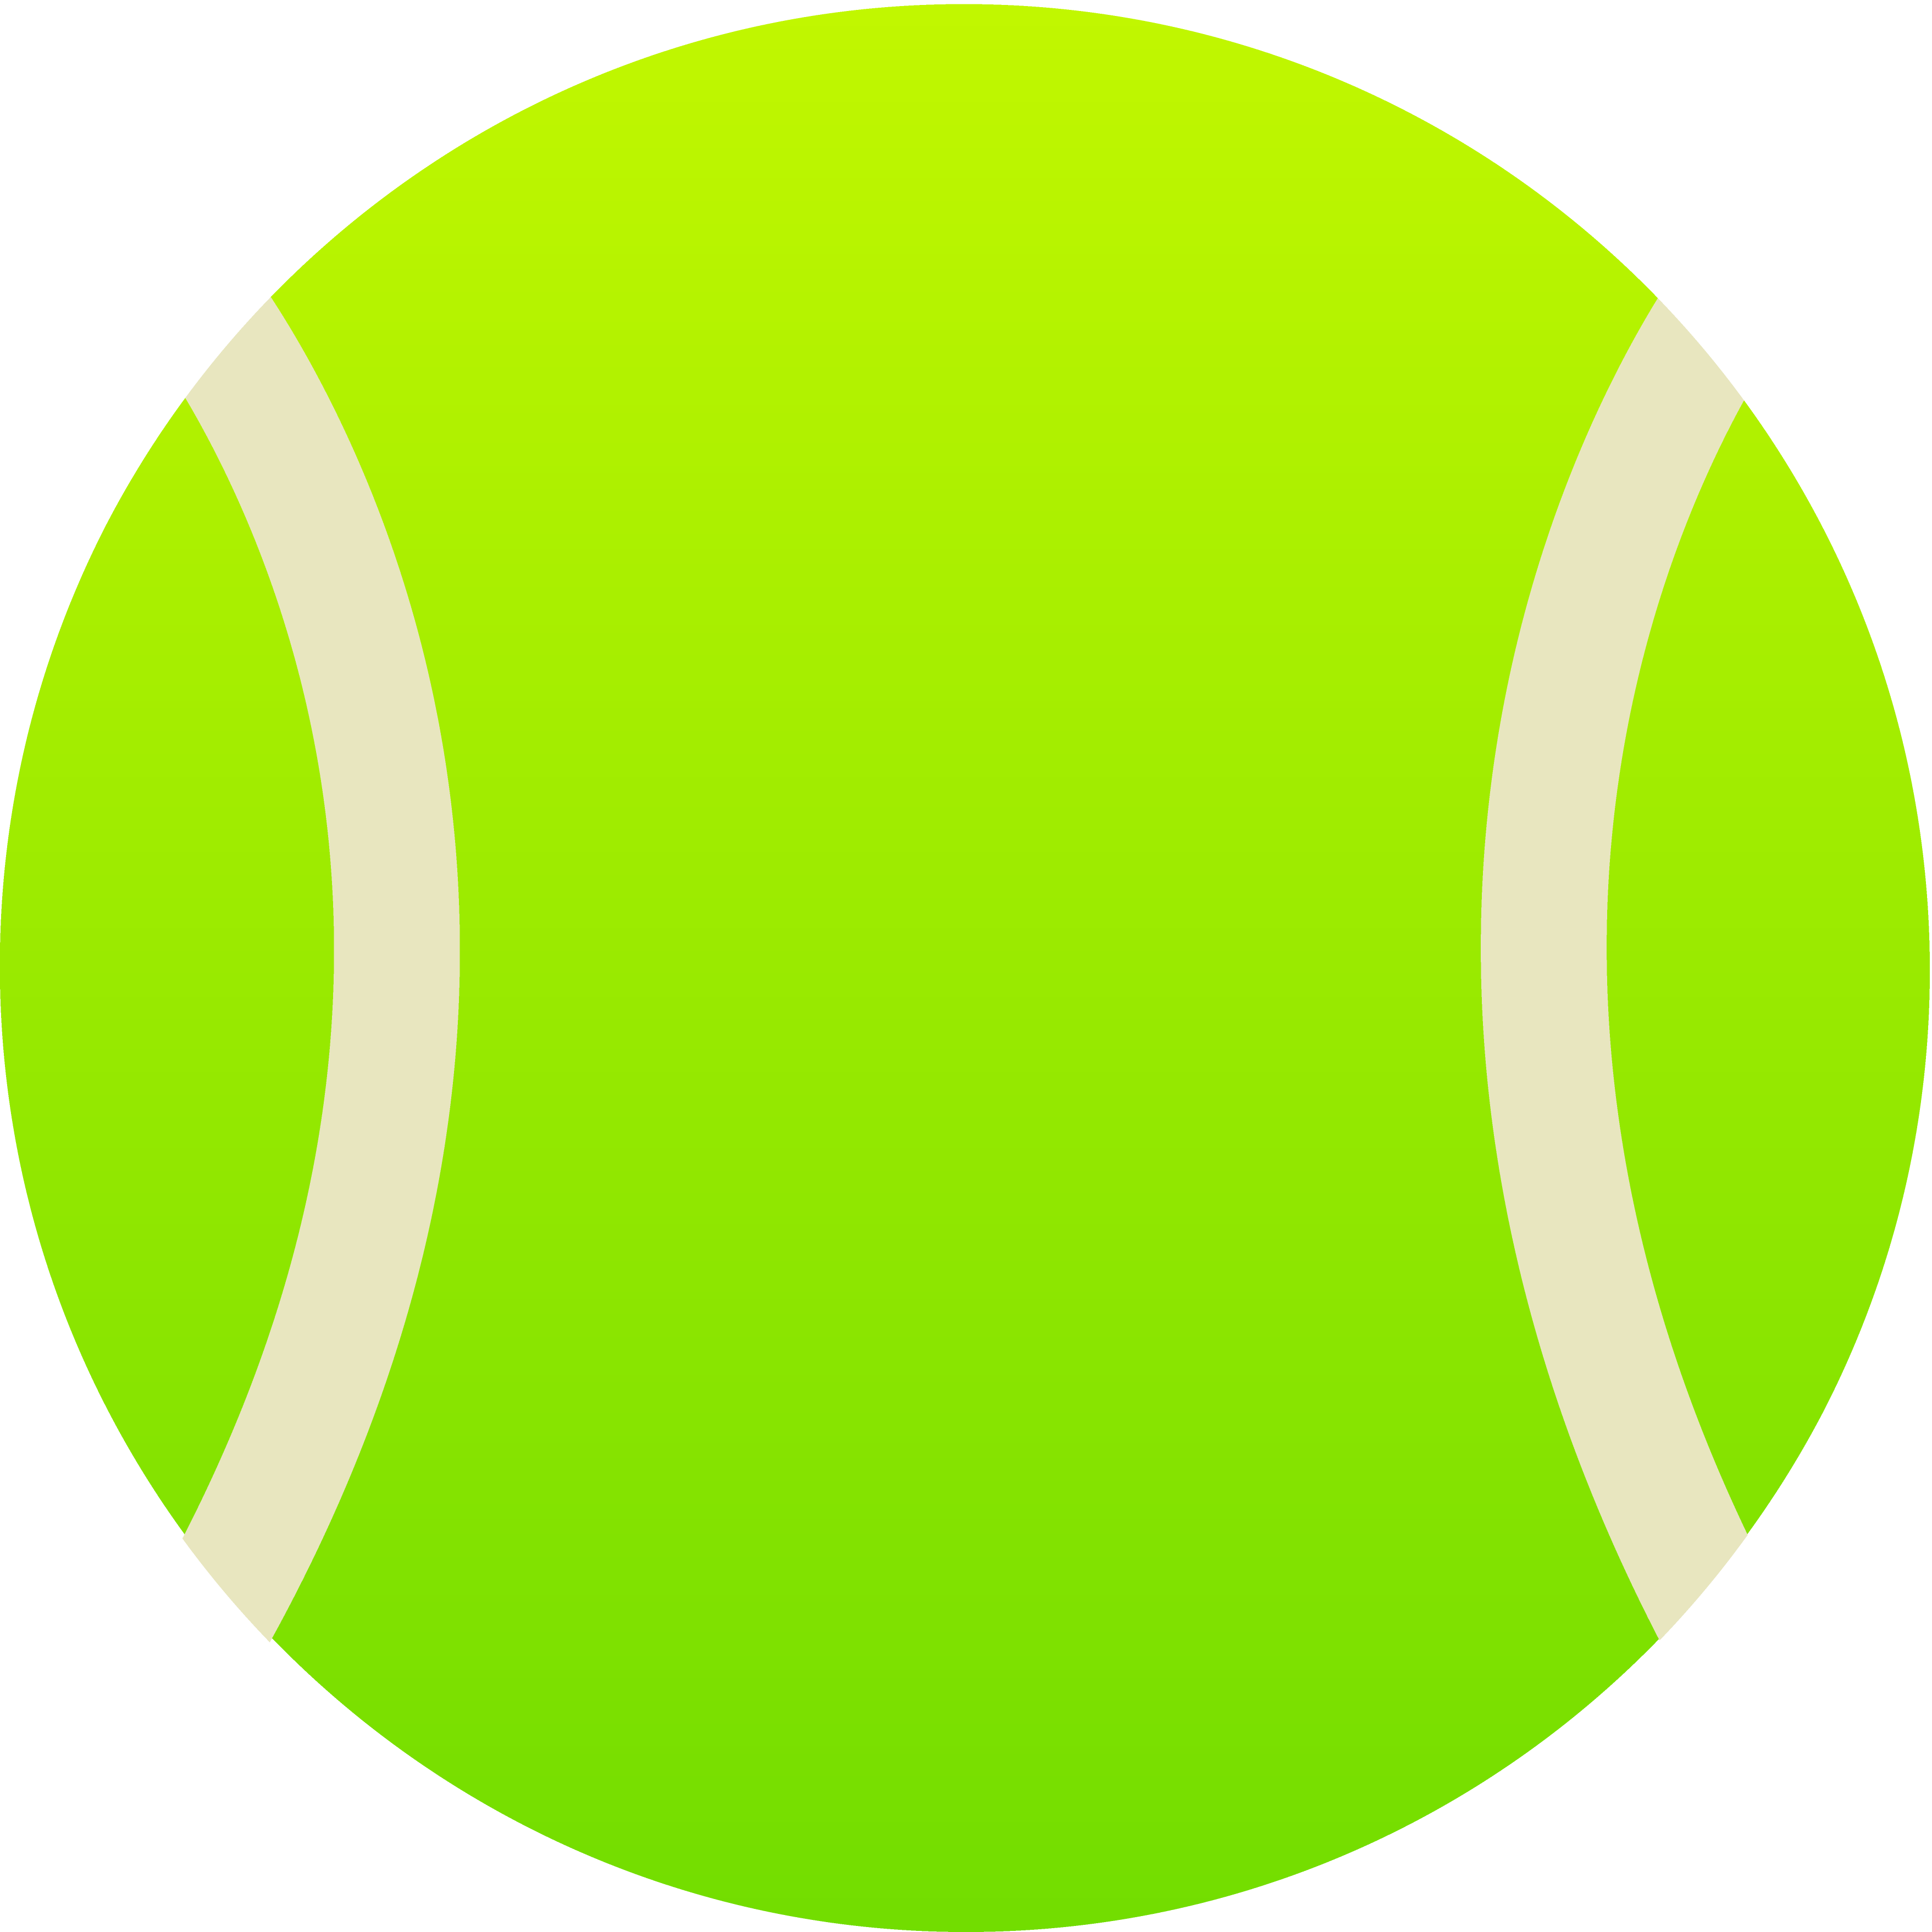 Free Tennis Ball Picture, Download Free Clip Art, Free Clip Art on.